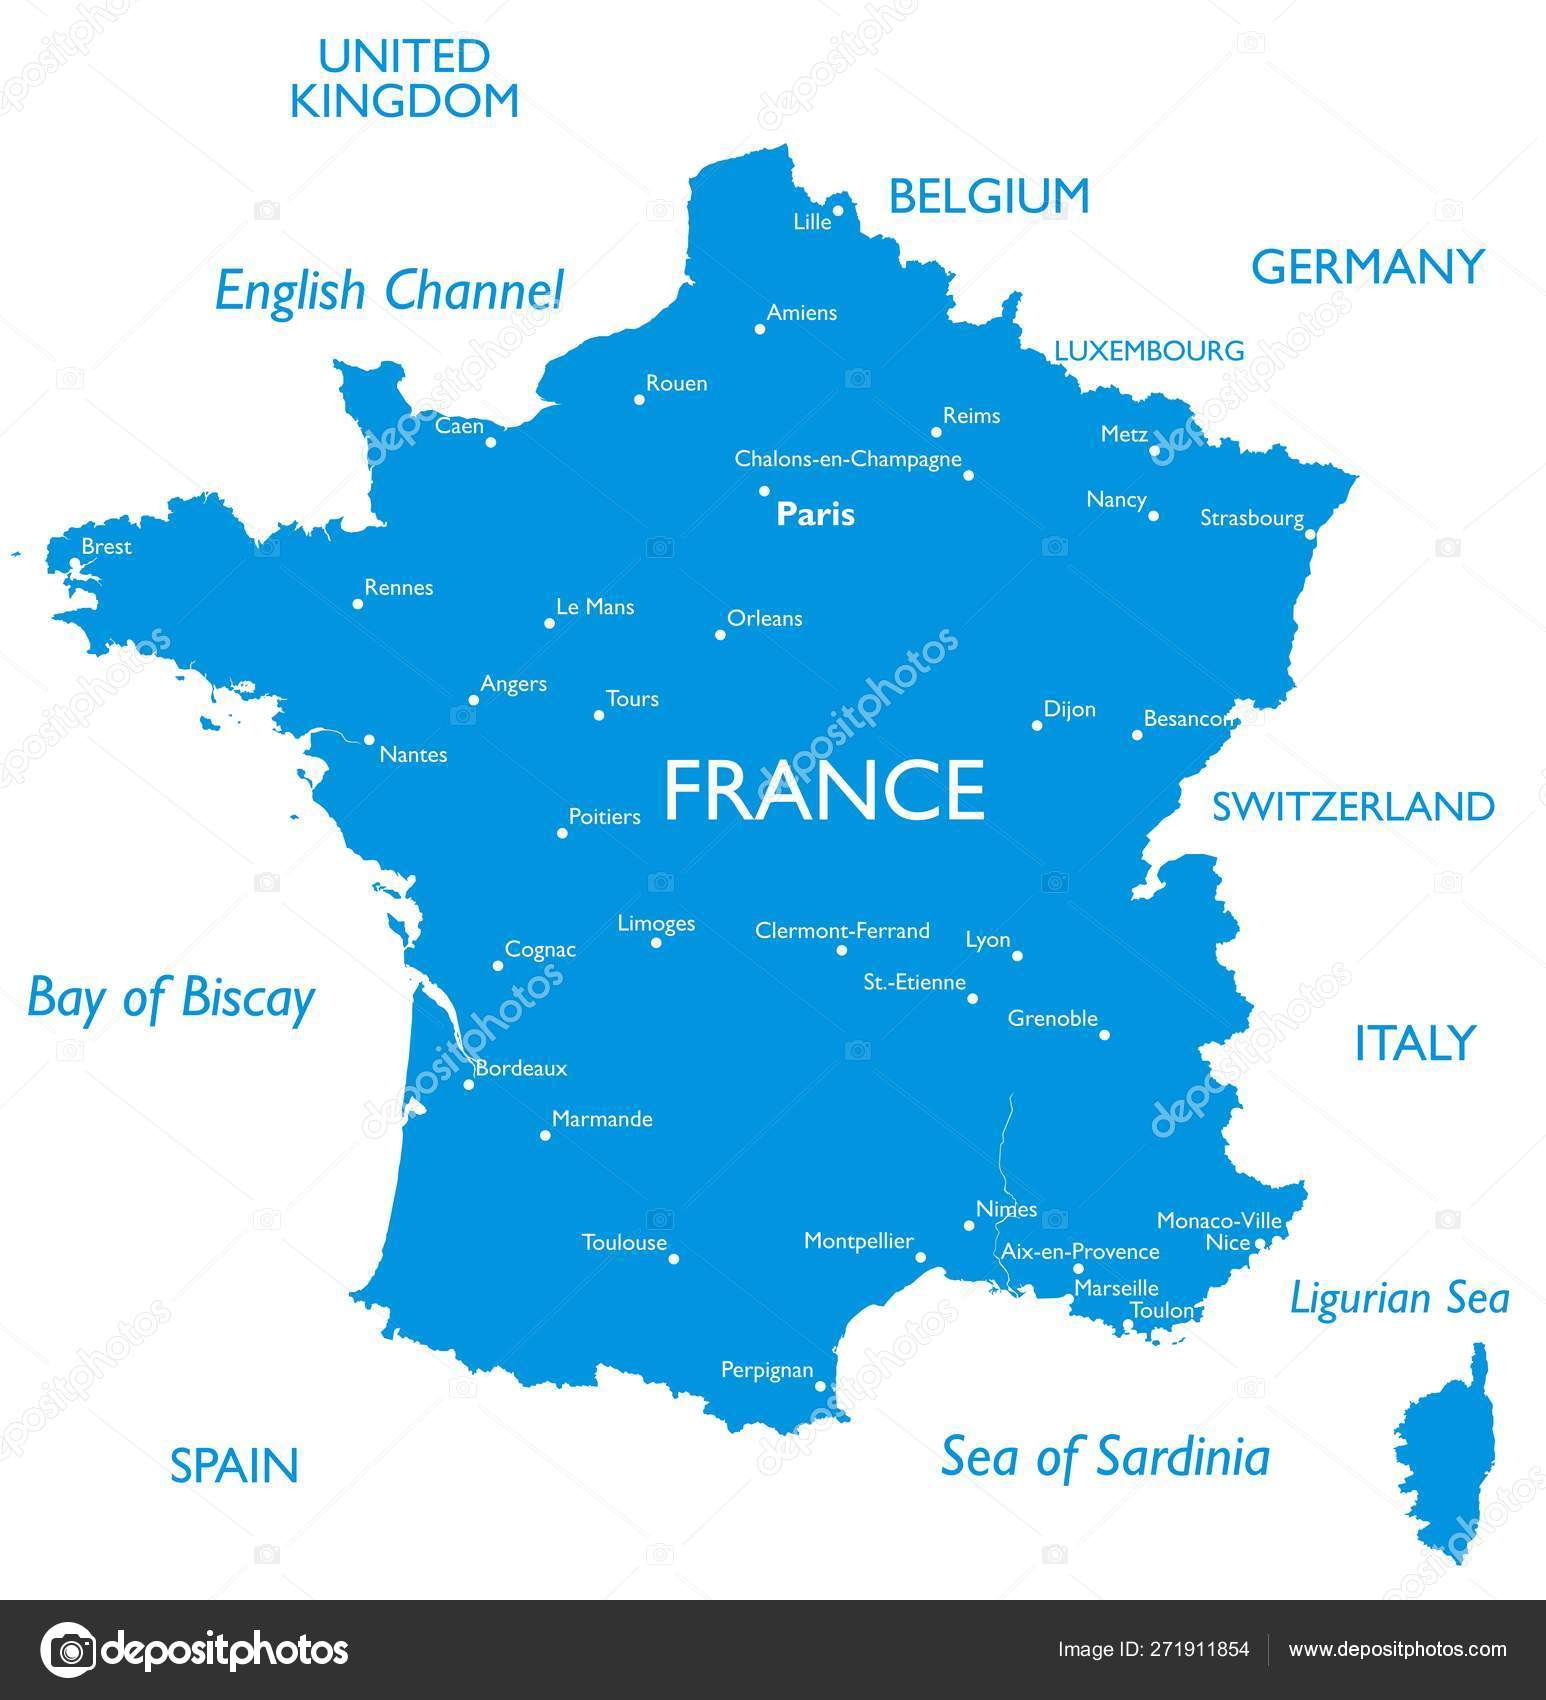 Map Of France With City Names.Vector Map France Outline Detailed Map City Names Stock Vector